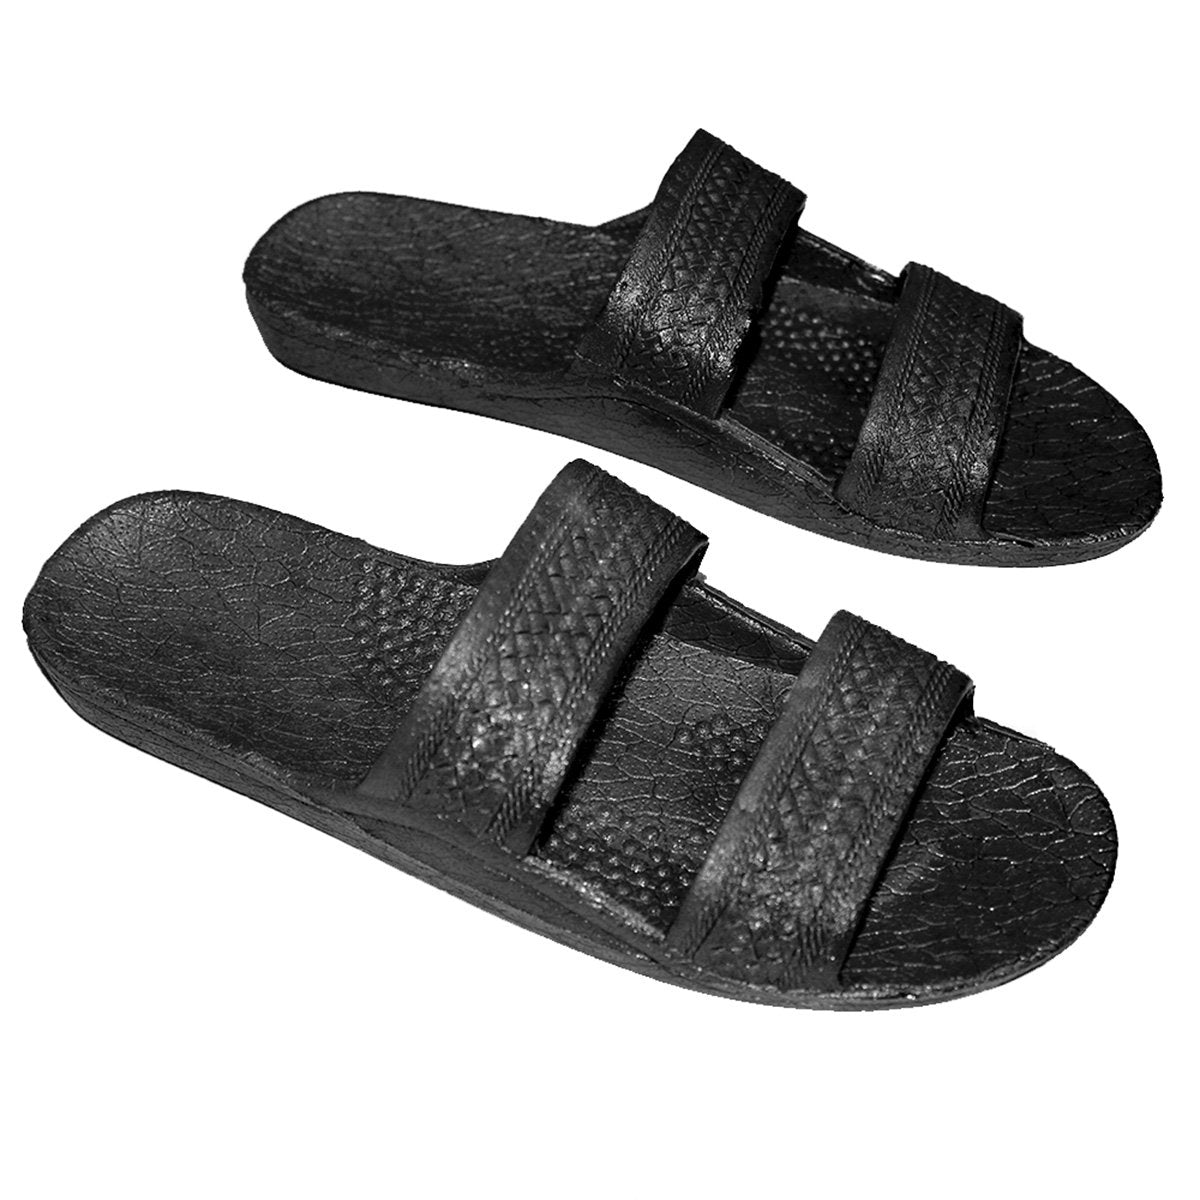 Hawaii Black Sandal | Open Toe Double Strap Hawaiian Slides - AlohaShoes.com